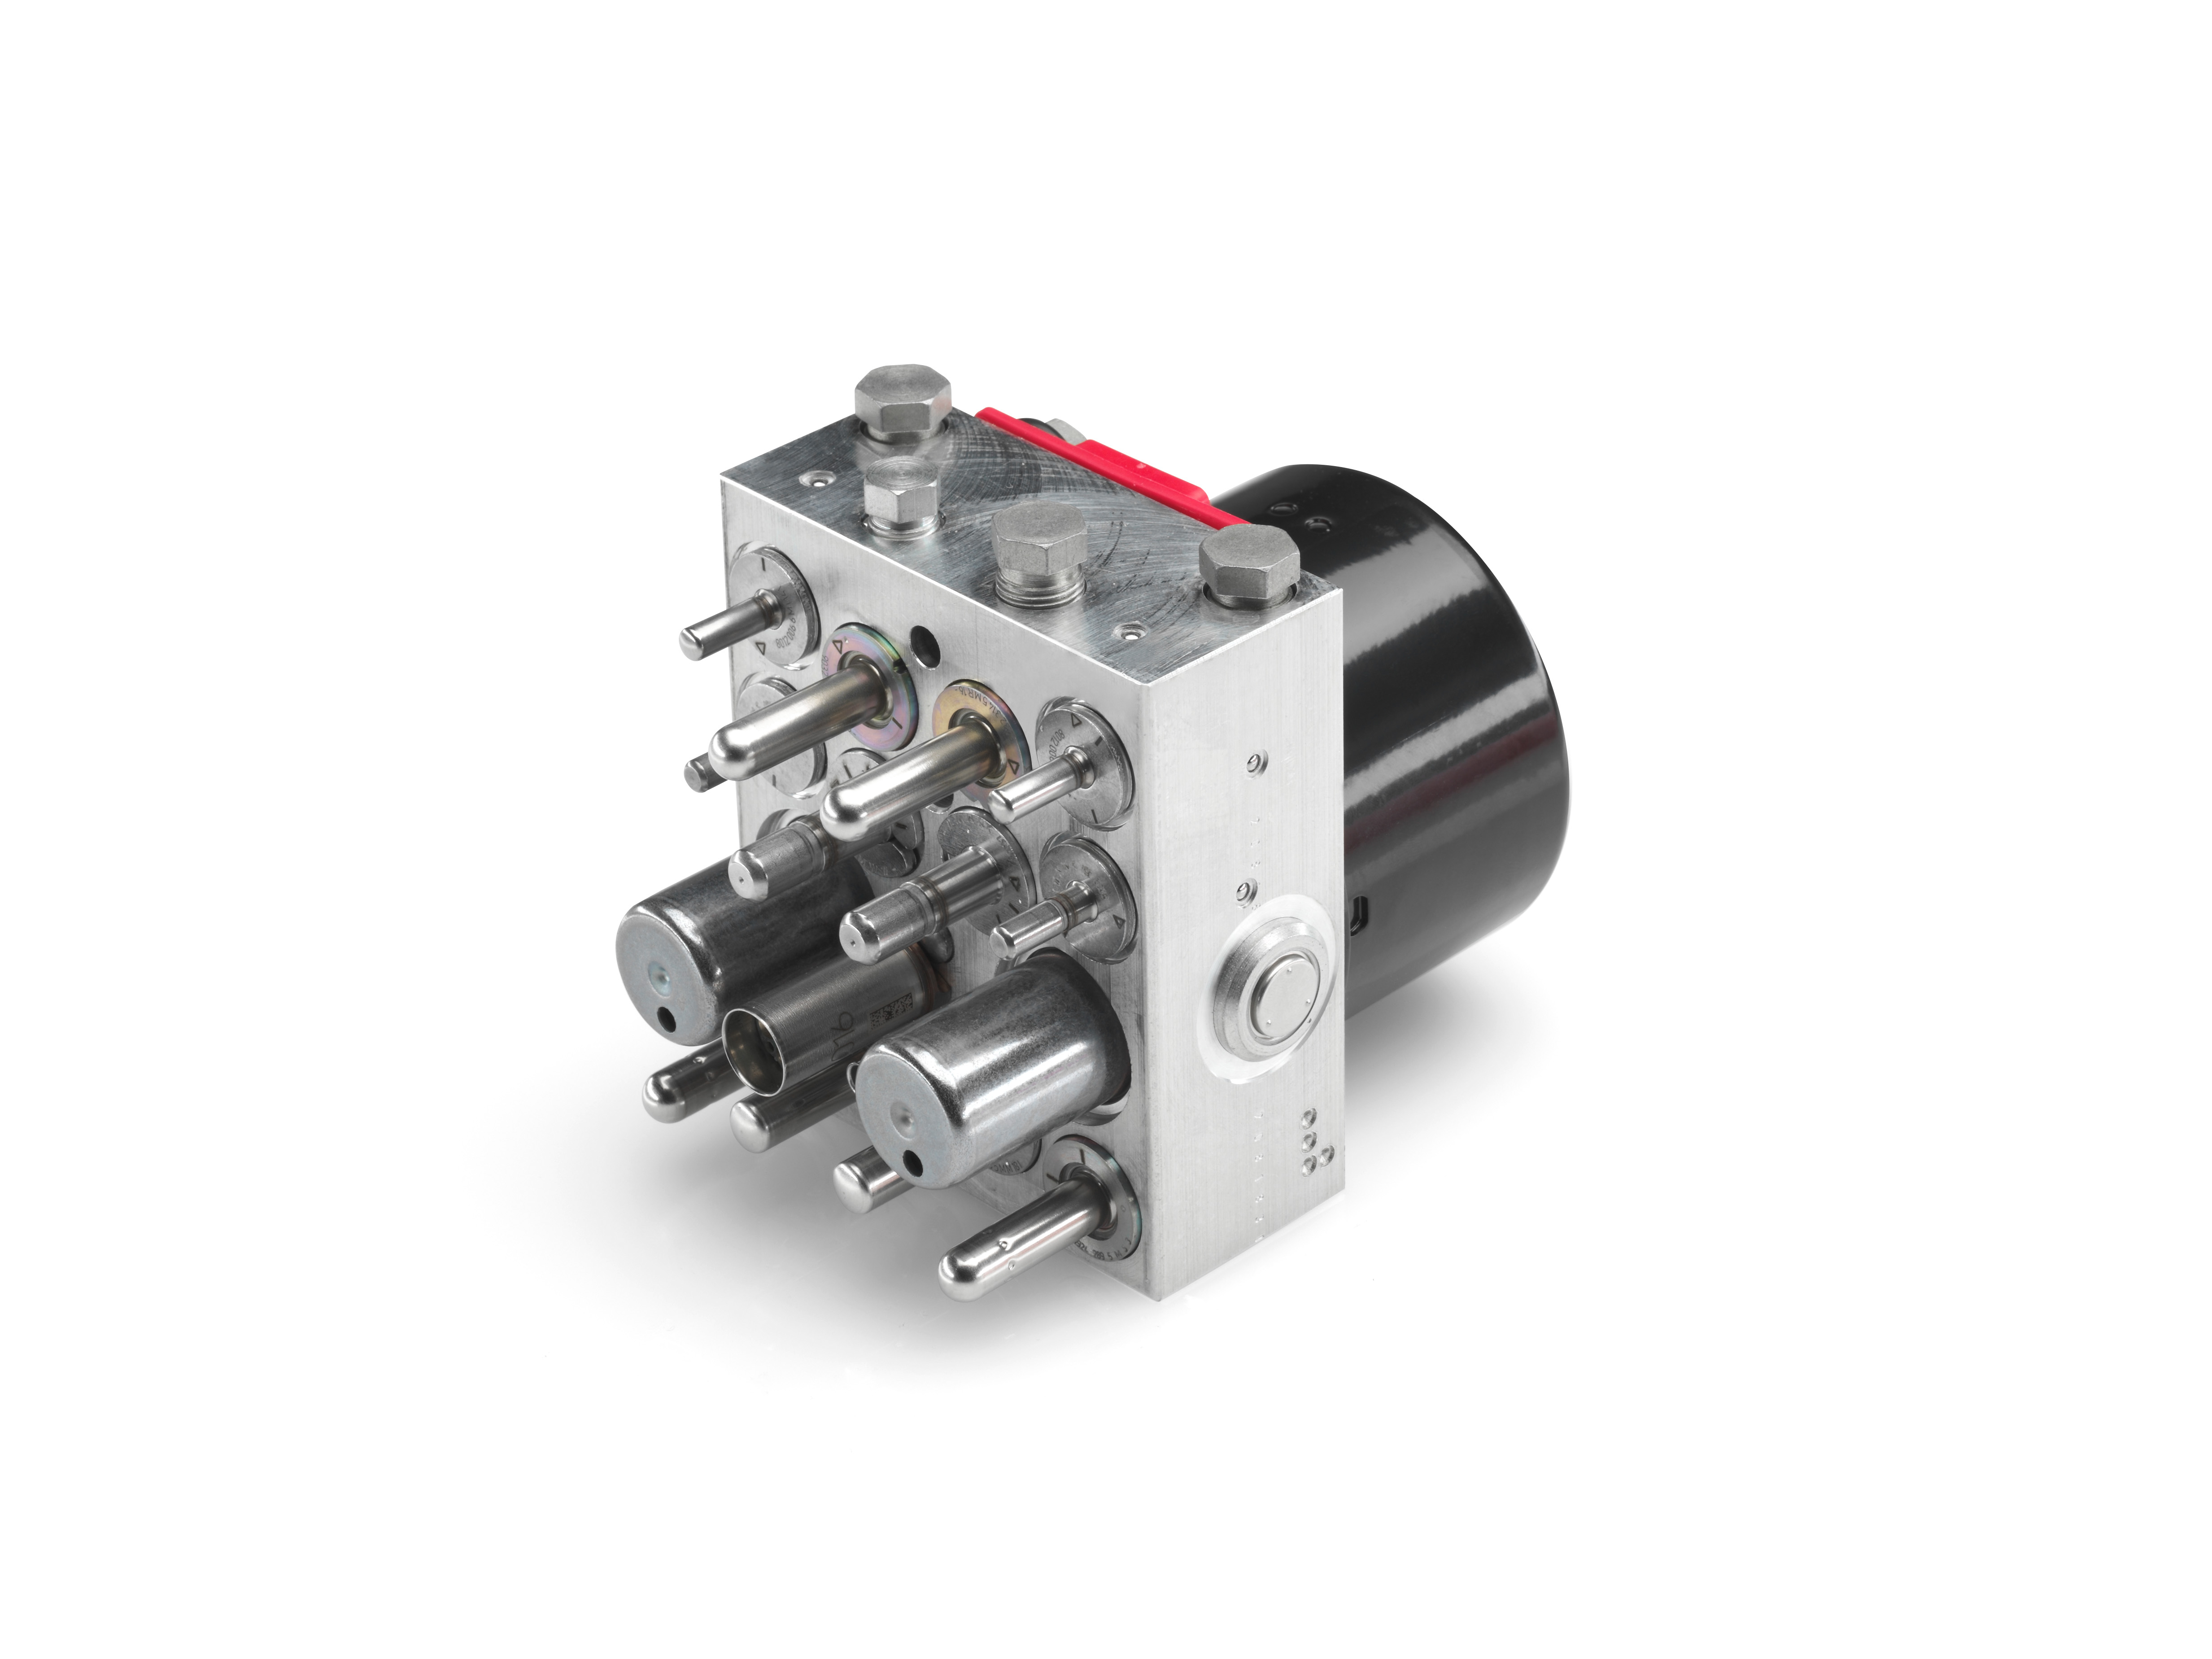 Easier ABS repairs: ATE introduces new hydraulic control